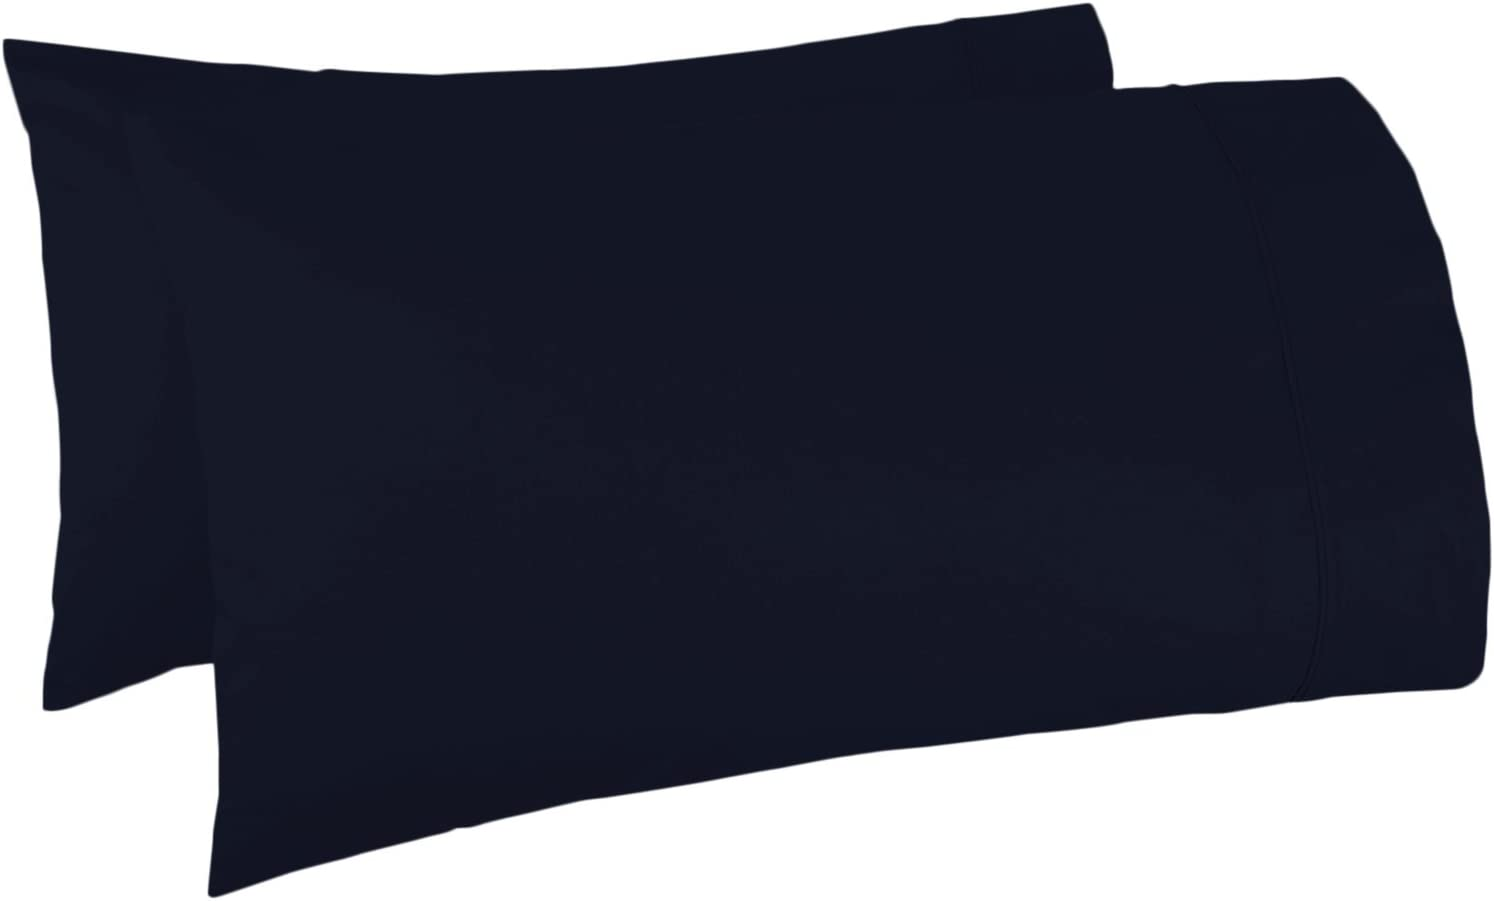 Amazon Com 500 Thread Count 100 Egyptian Cotton Pillow Cases Navy Blue Standard Pillowcase Set Of 2 Long Staple Combed Pure Natural 100 Cotton Pillows For Sleeping Soft Silky Sateen Weave Bed Pillow Cover Home